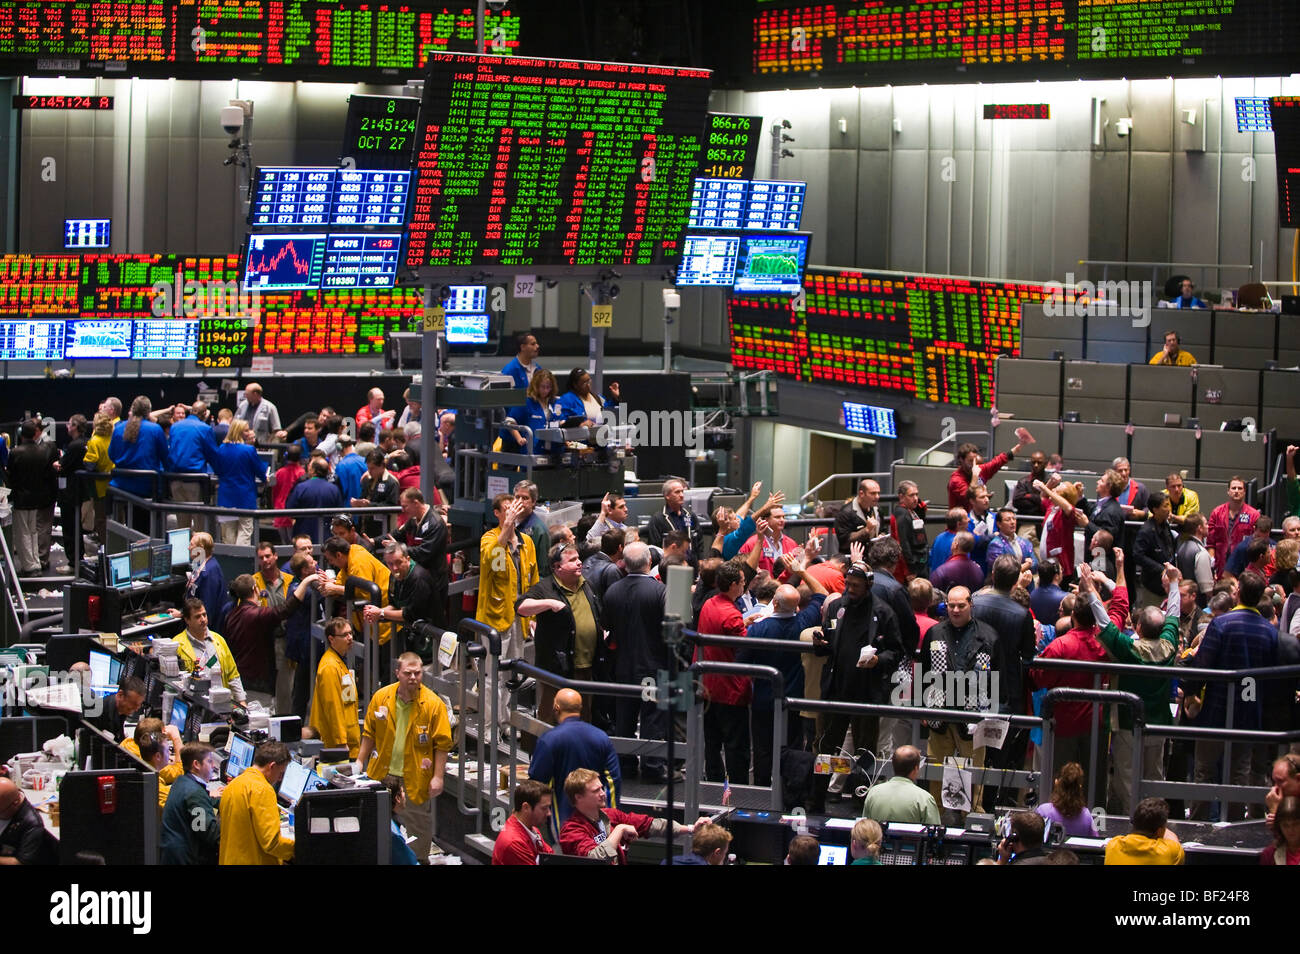 Sad Guys On Trading Floor - Gallery | eBaum's World